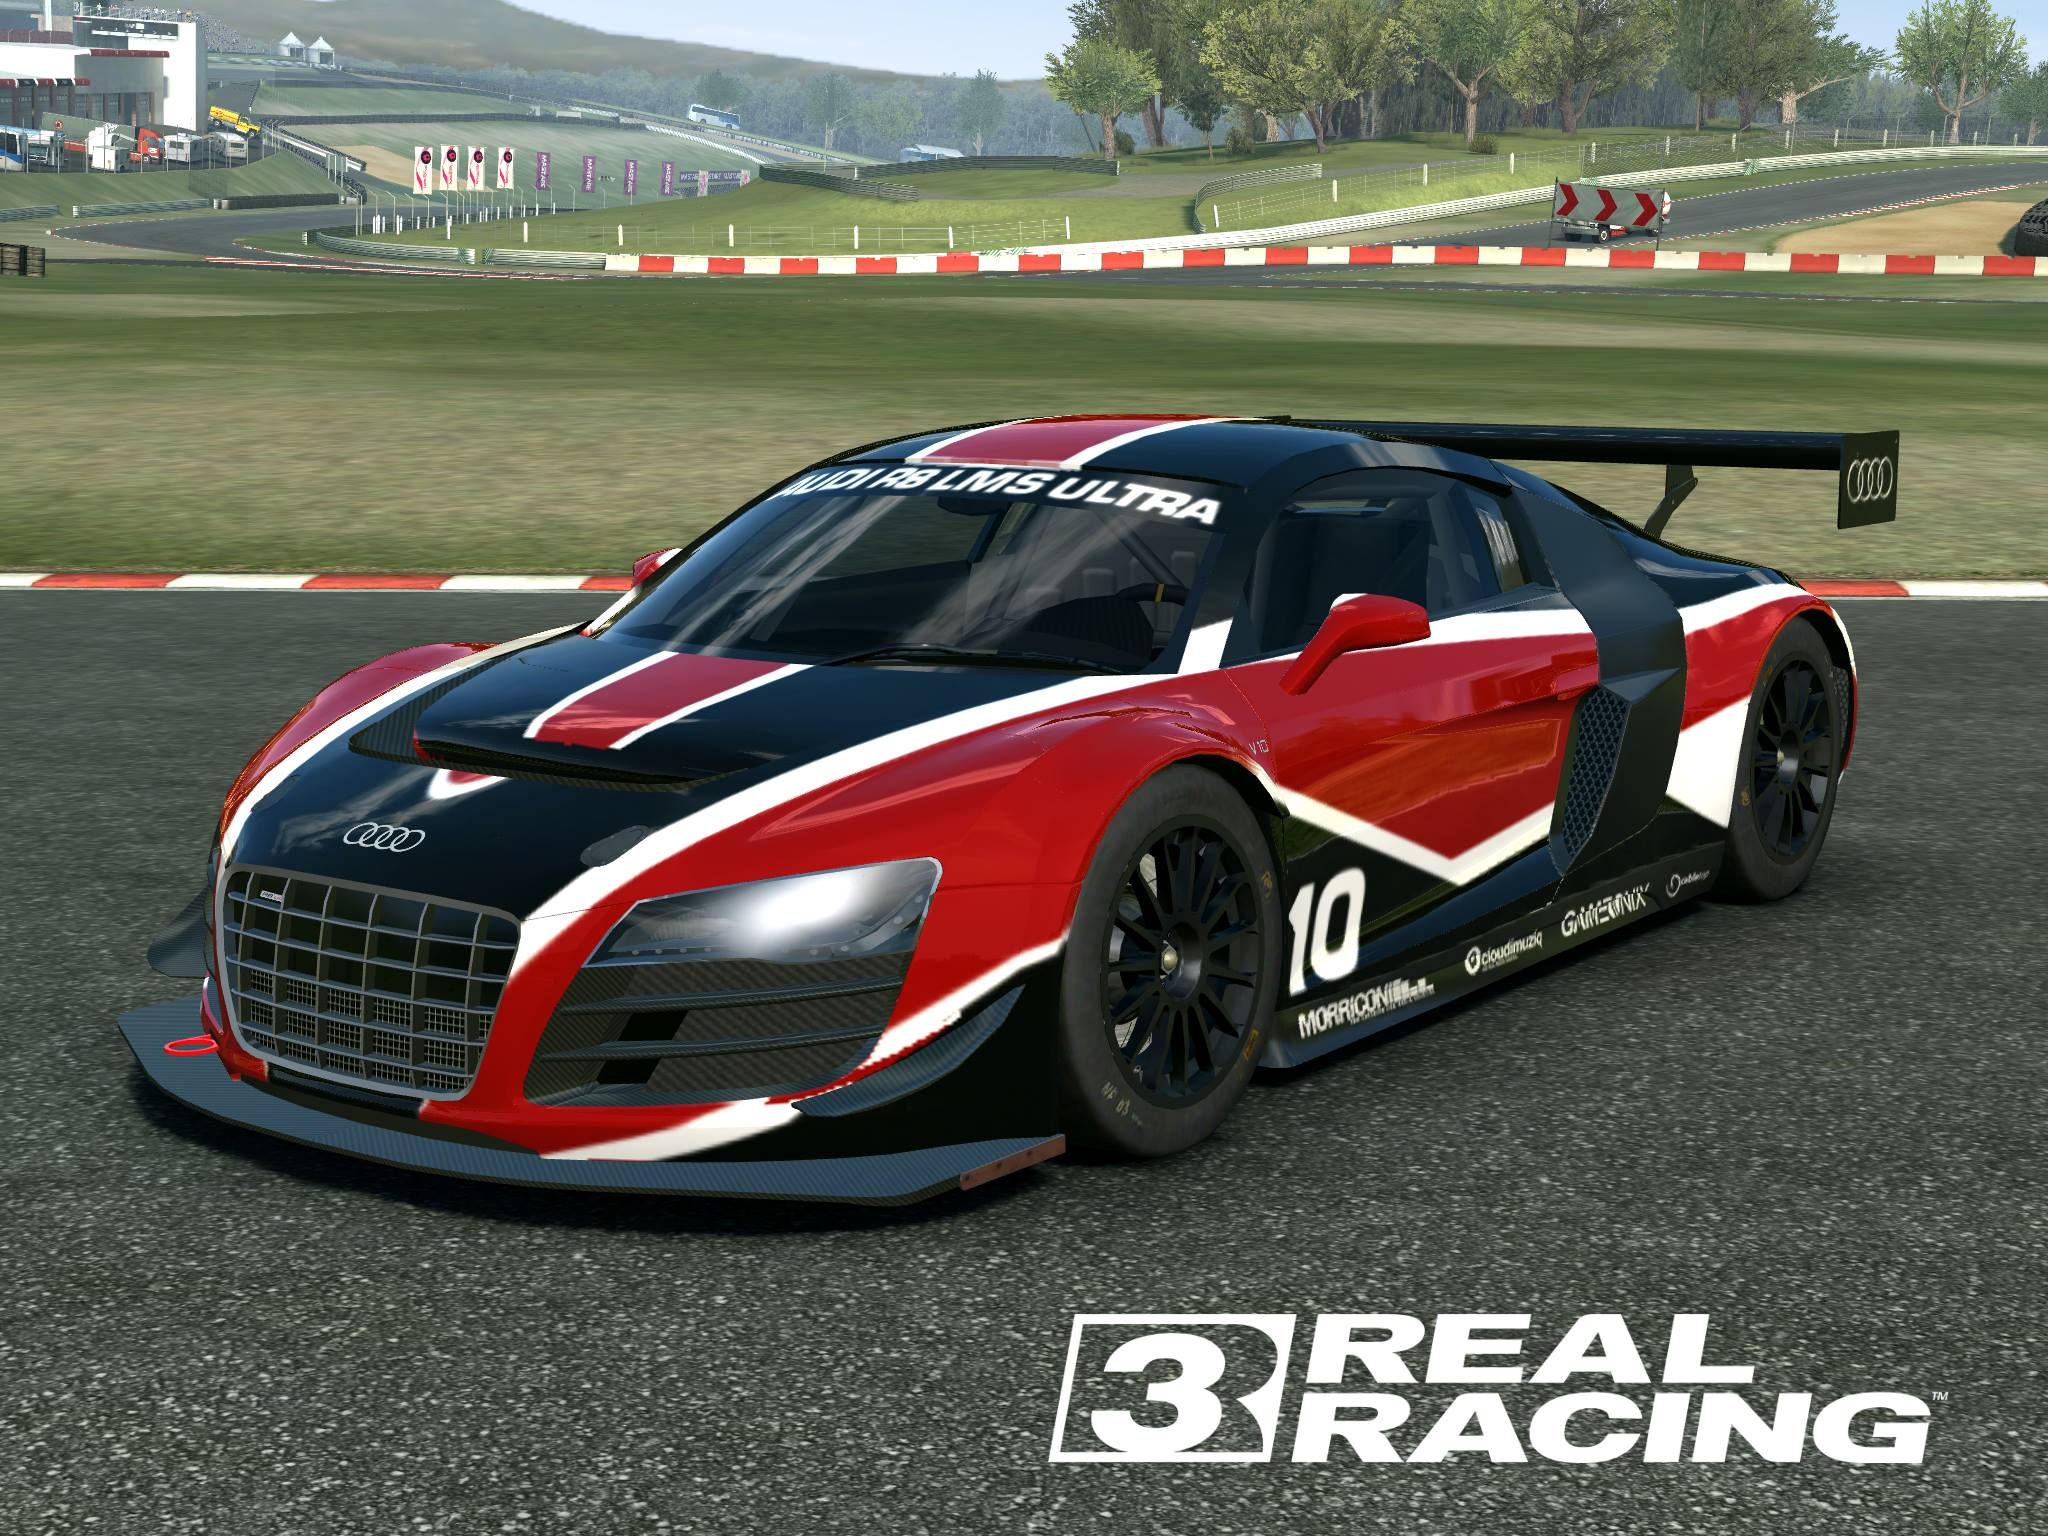 Audi Lms Ultra Real Racing By Silent Valiance On Deviantart